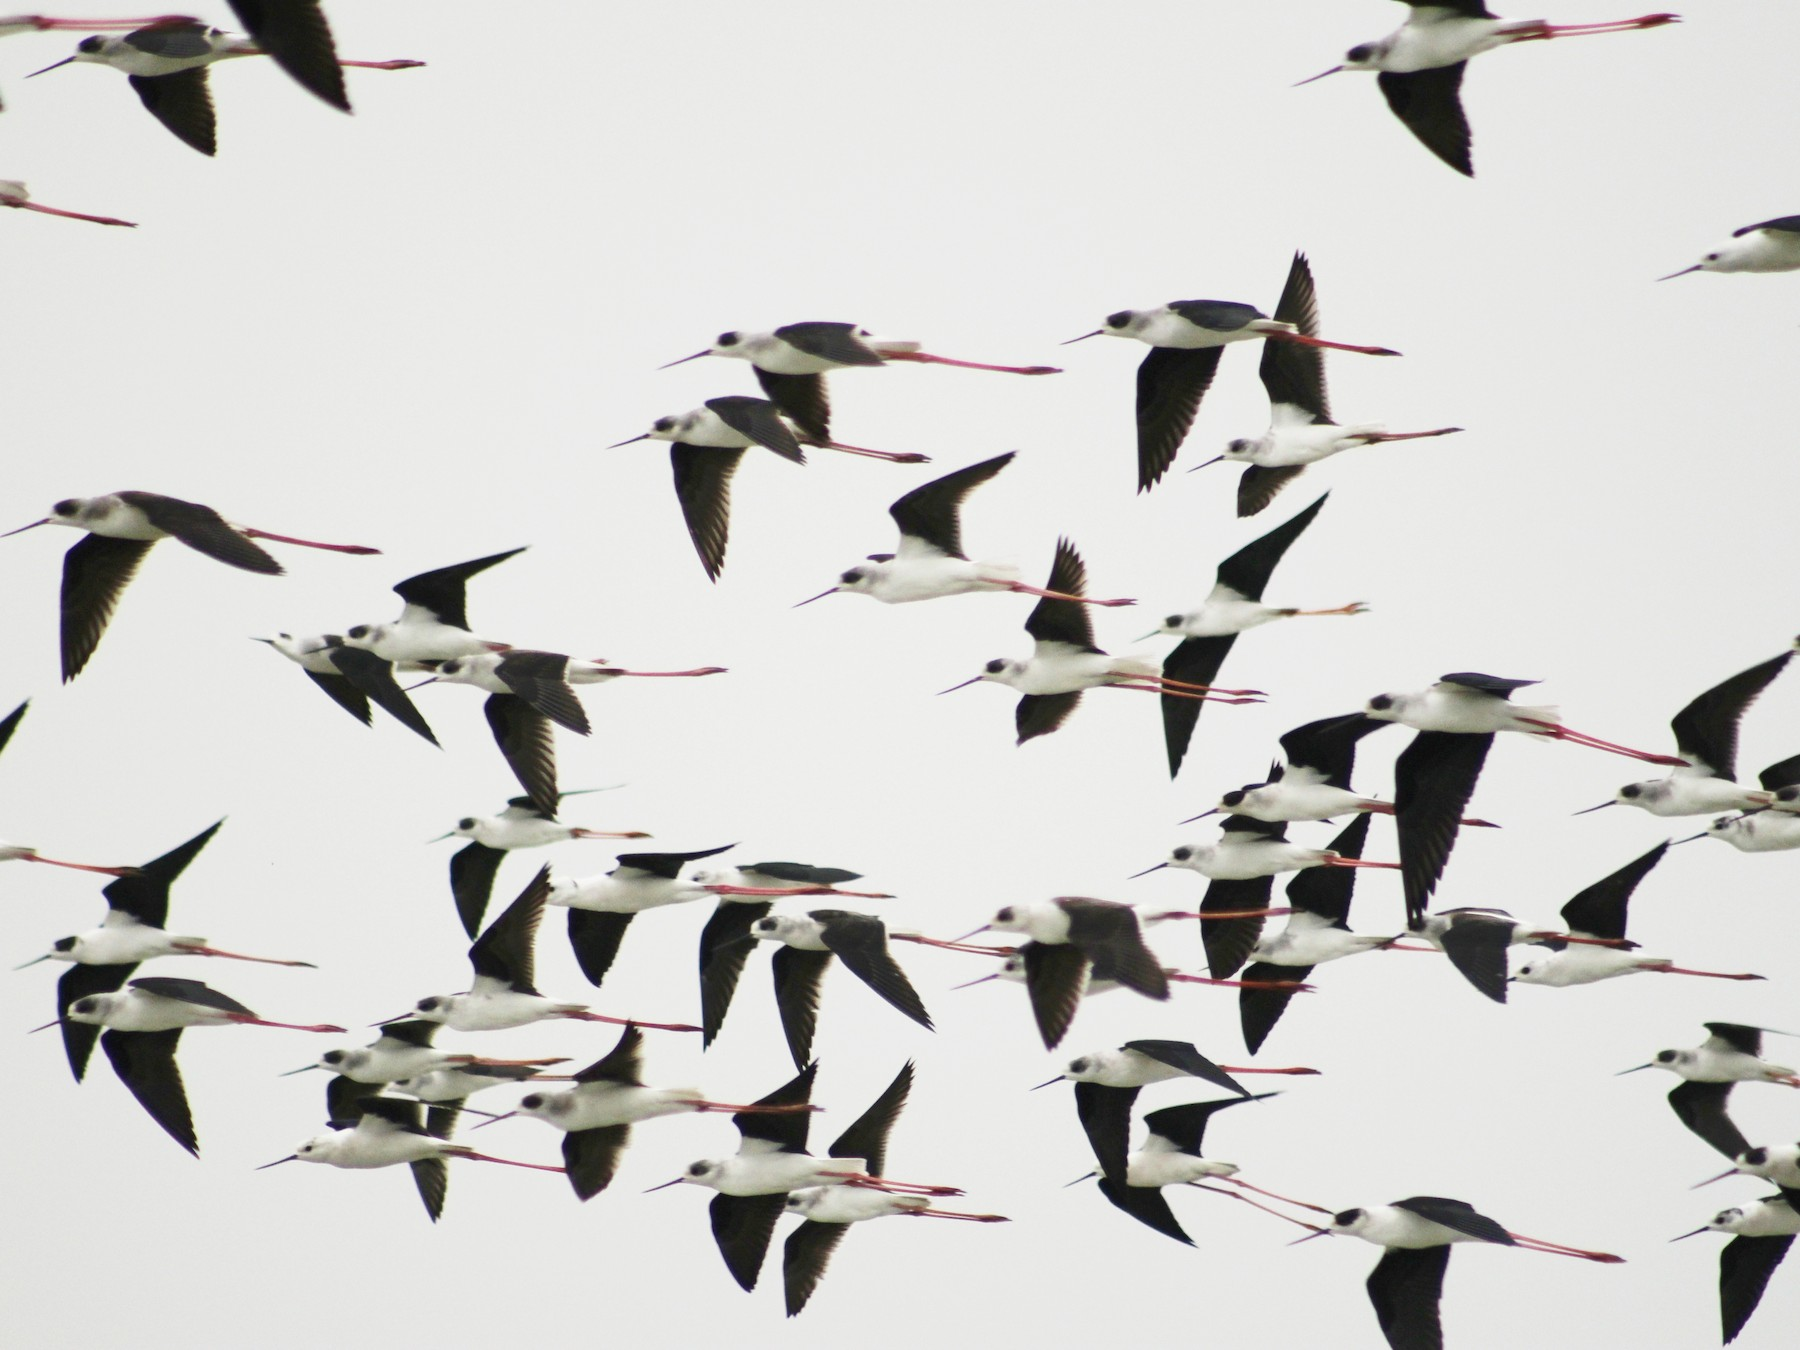 Black-winged Stilt - Anamul Hassan